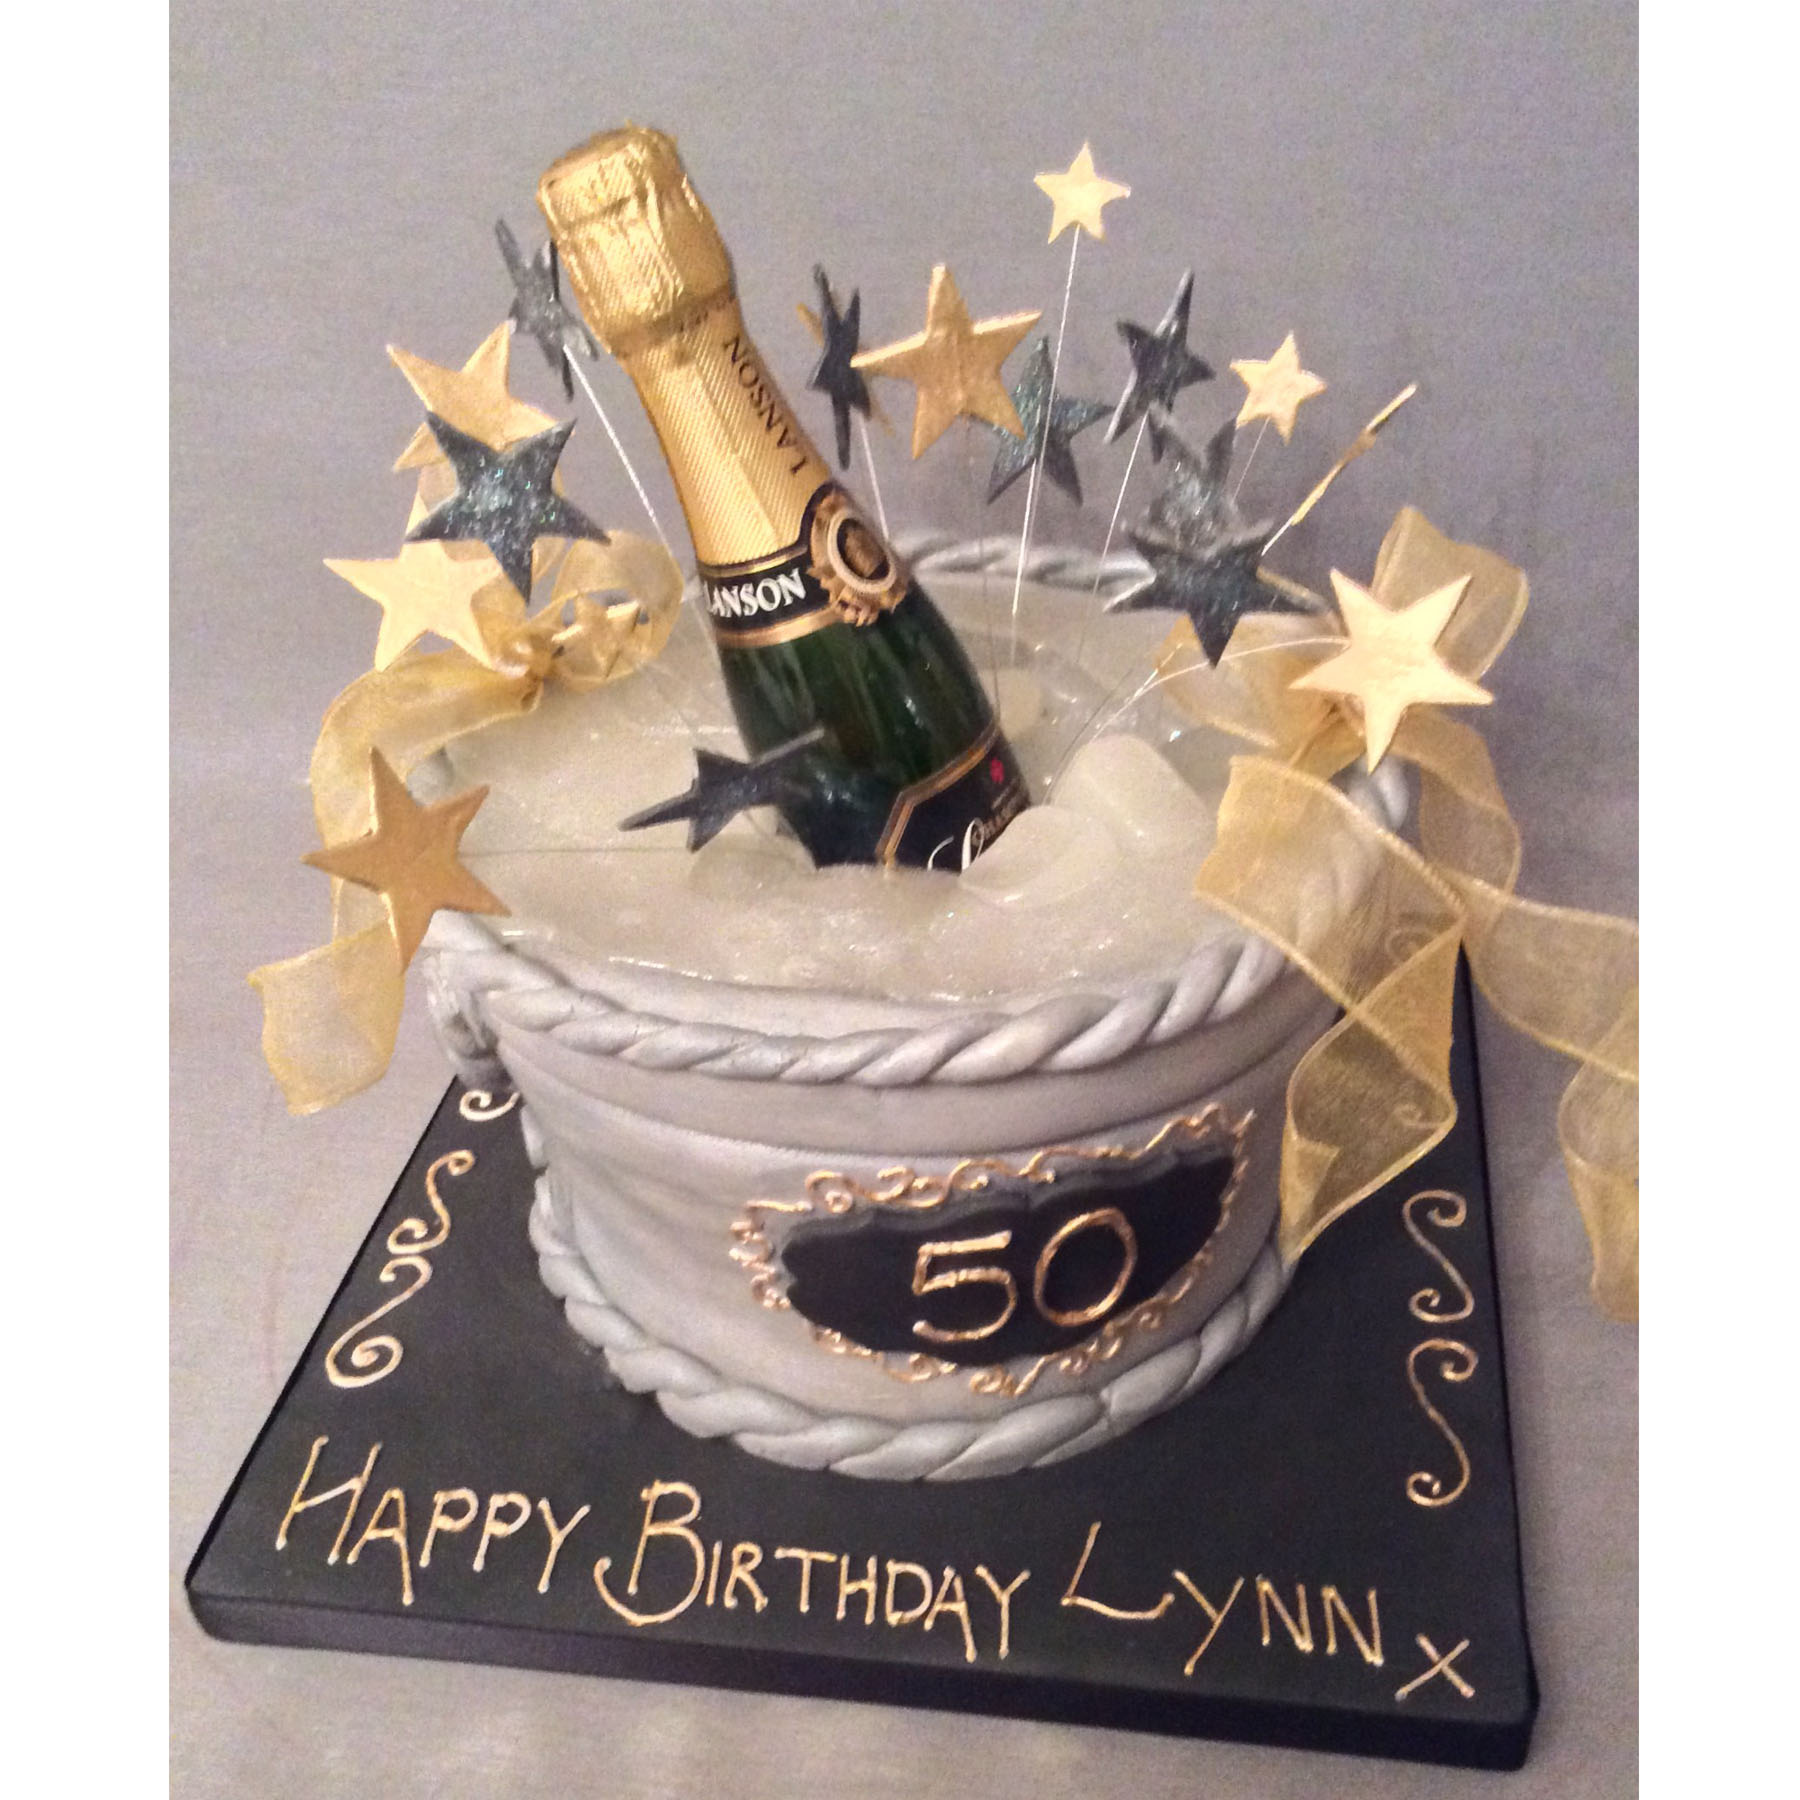 Champagne Cake Decorations